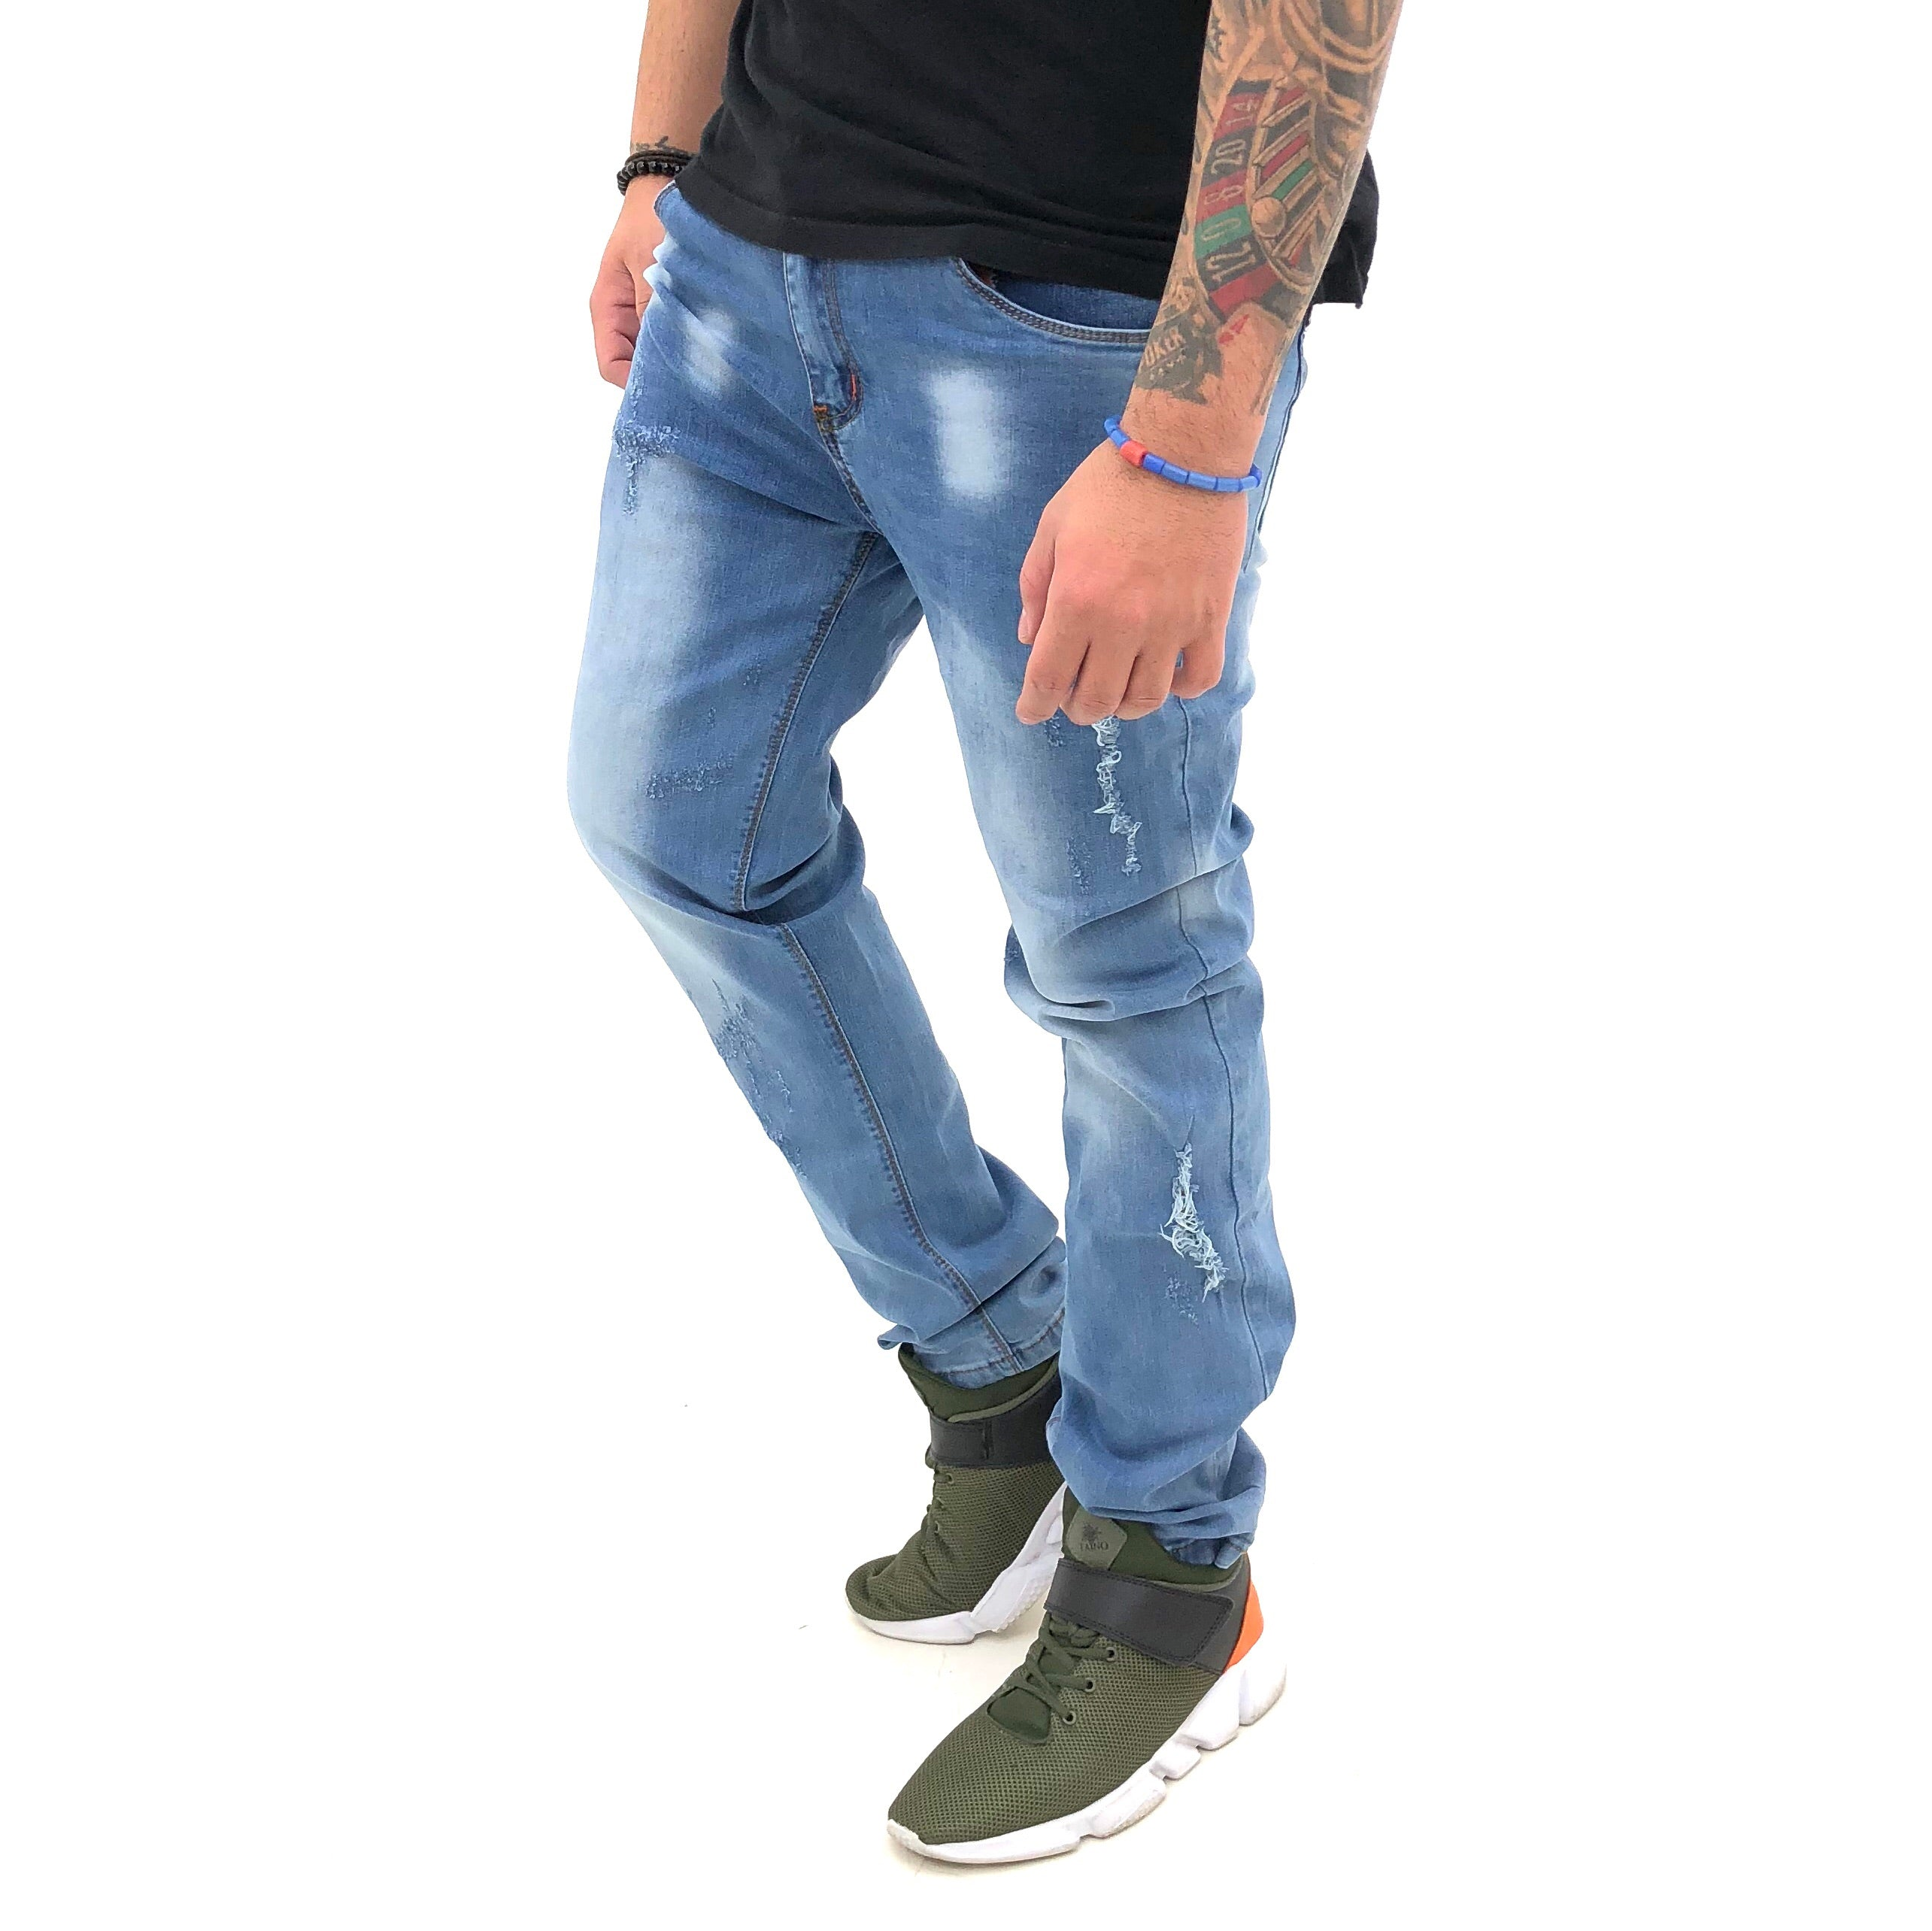 Urban Denim - Bacana Clothing + Shoes